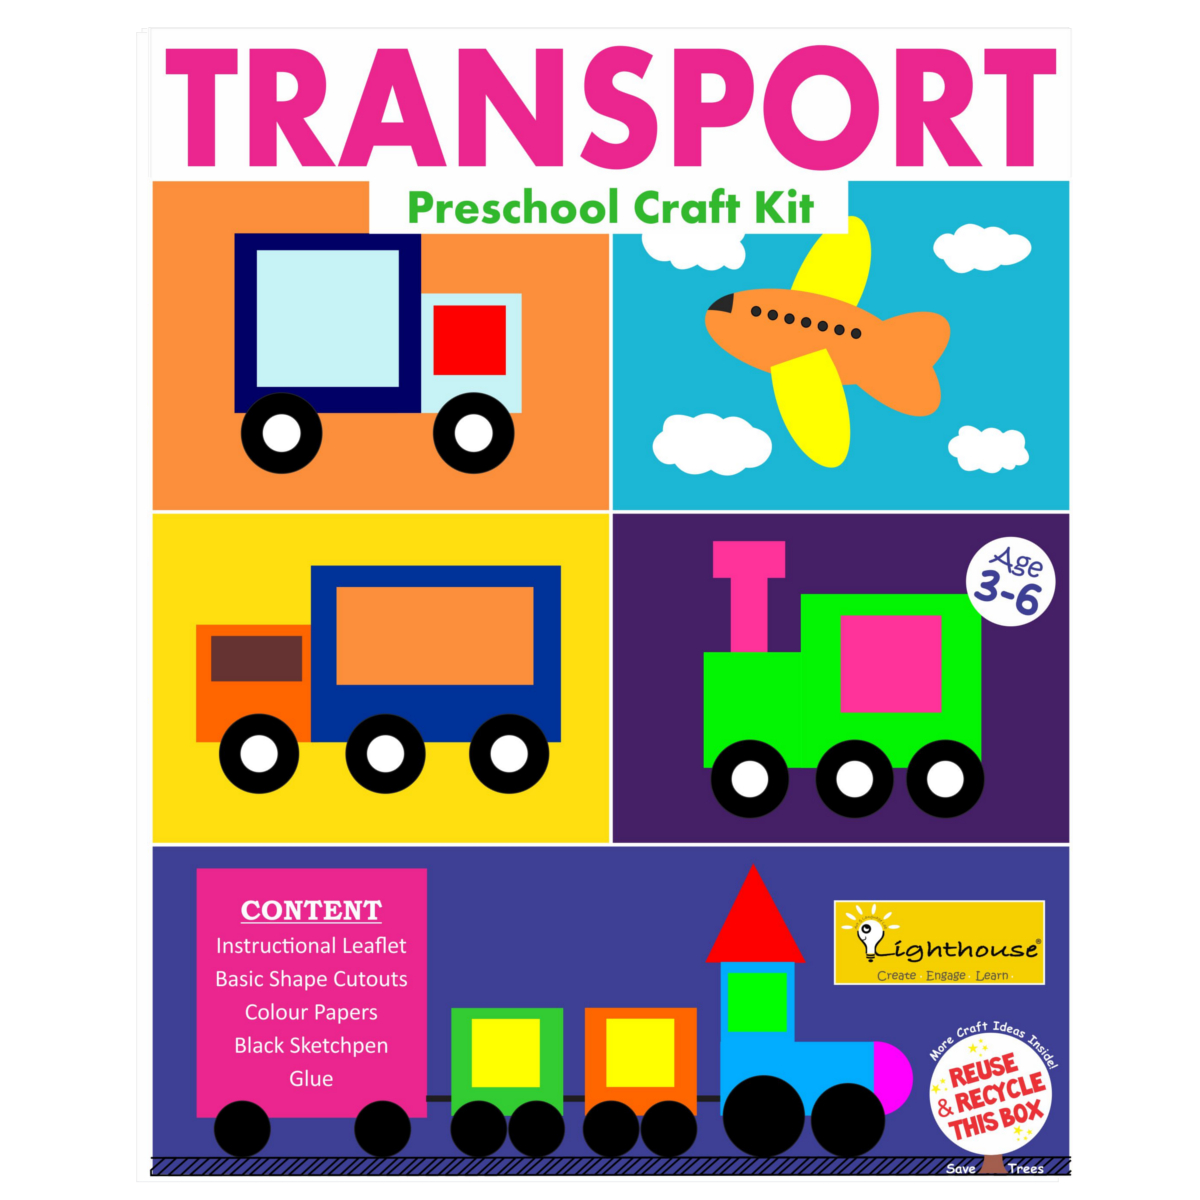 Make Your Own Transport Preschool Craft Kit